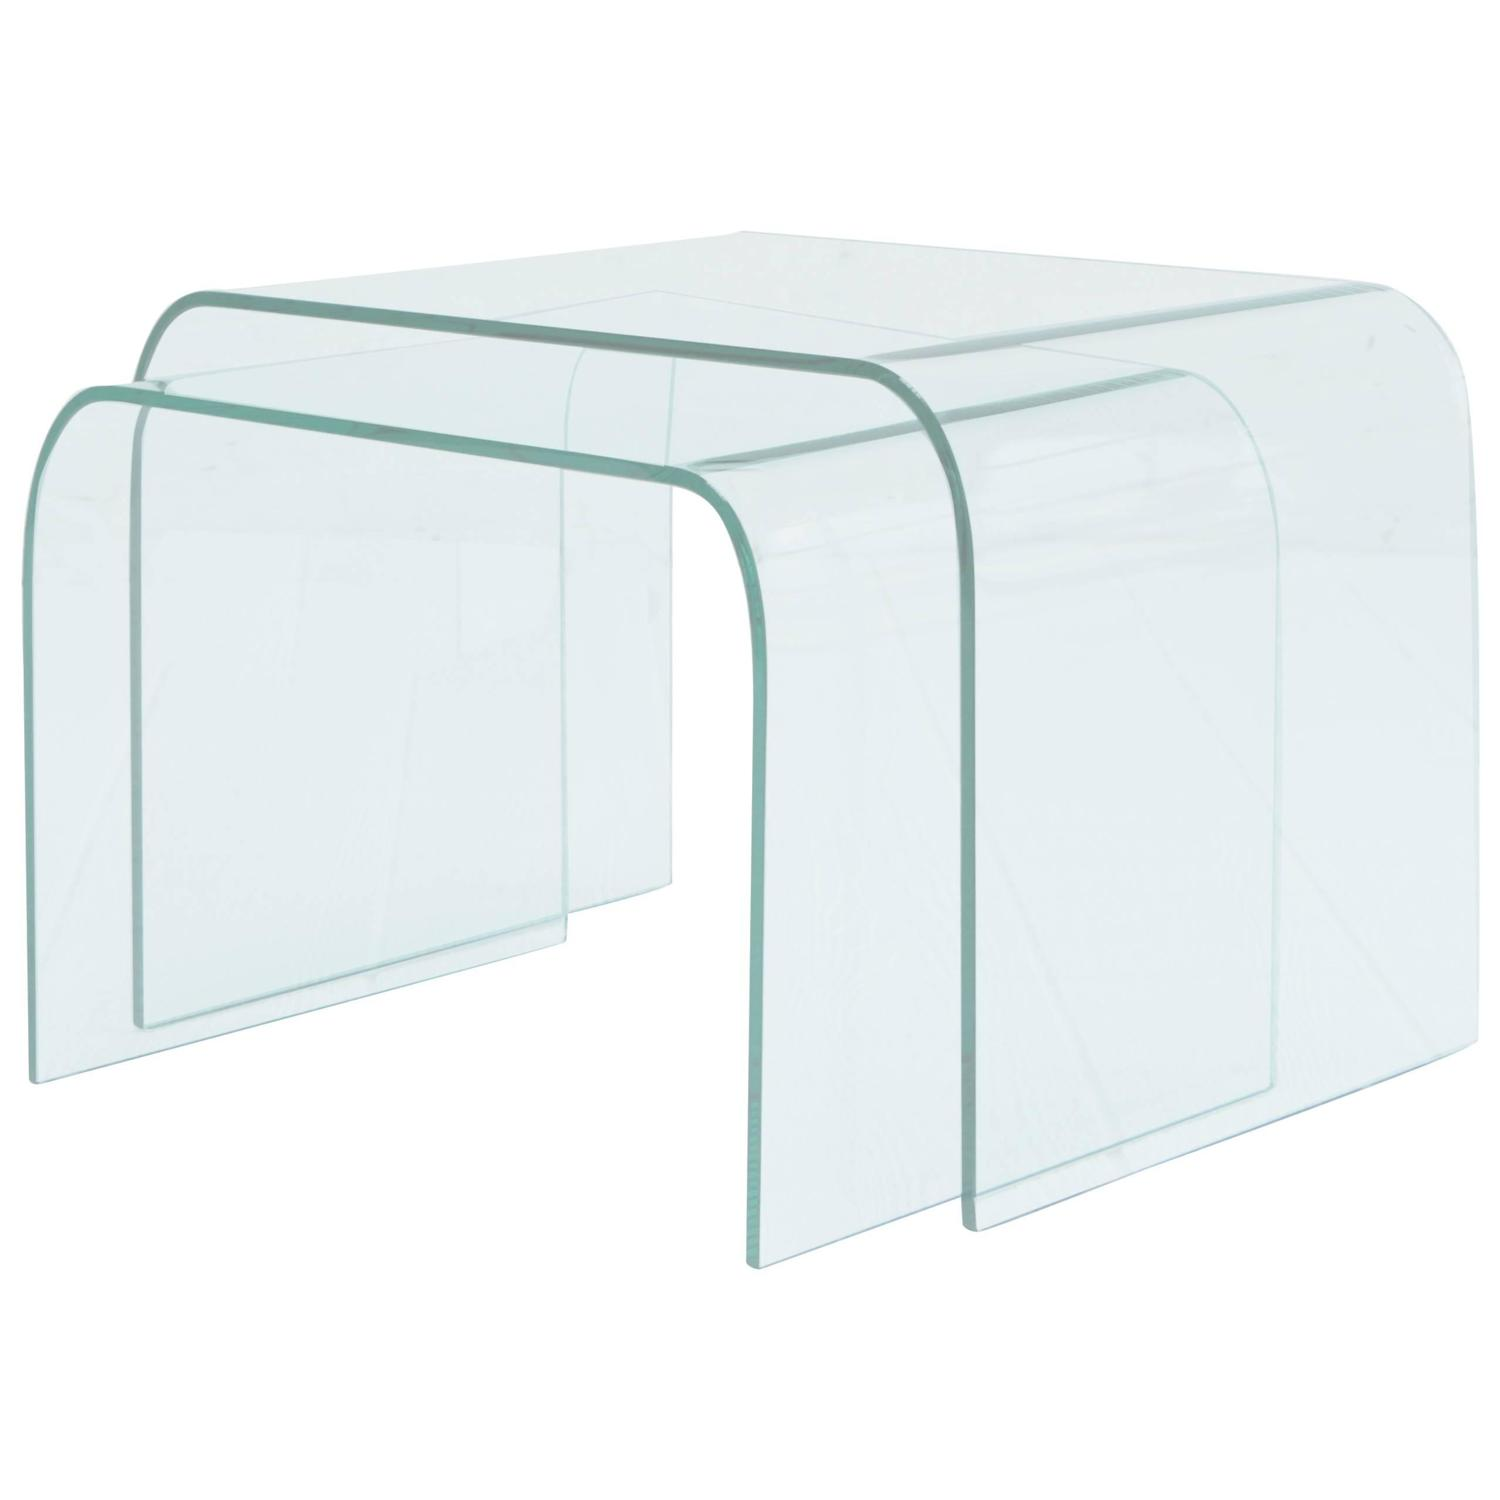 Angelo Cortesi Curved Glass Waterfall Nesting Tables at 1stdibs